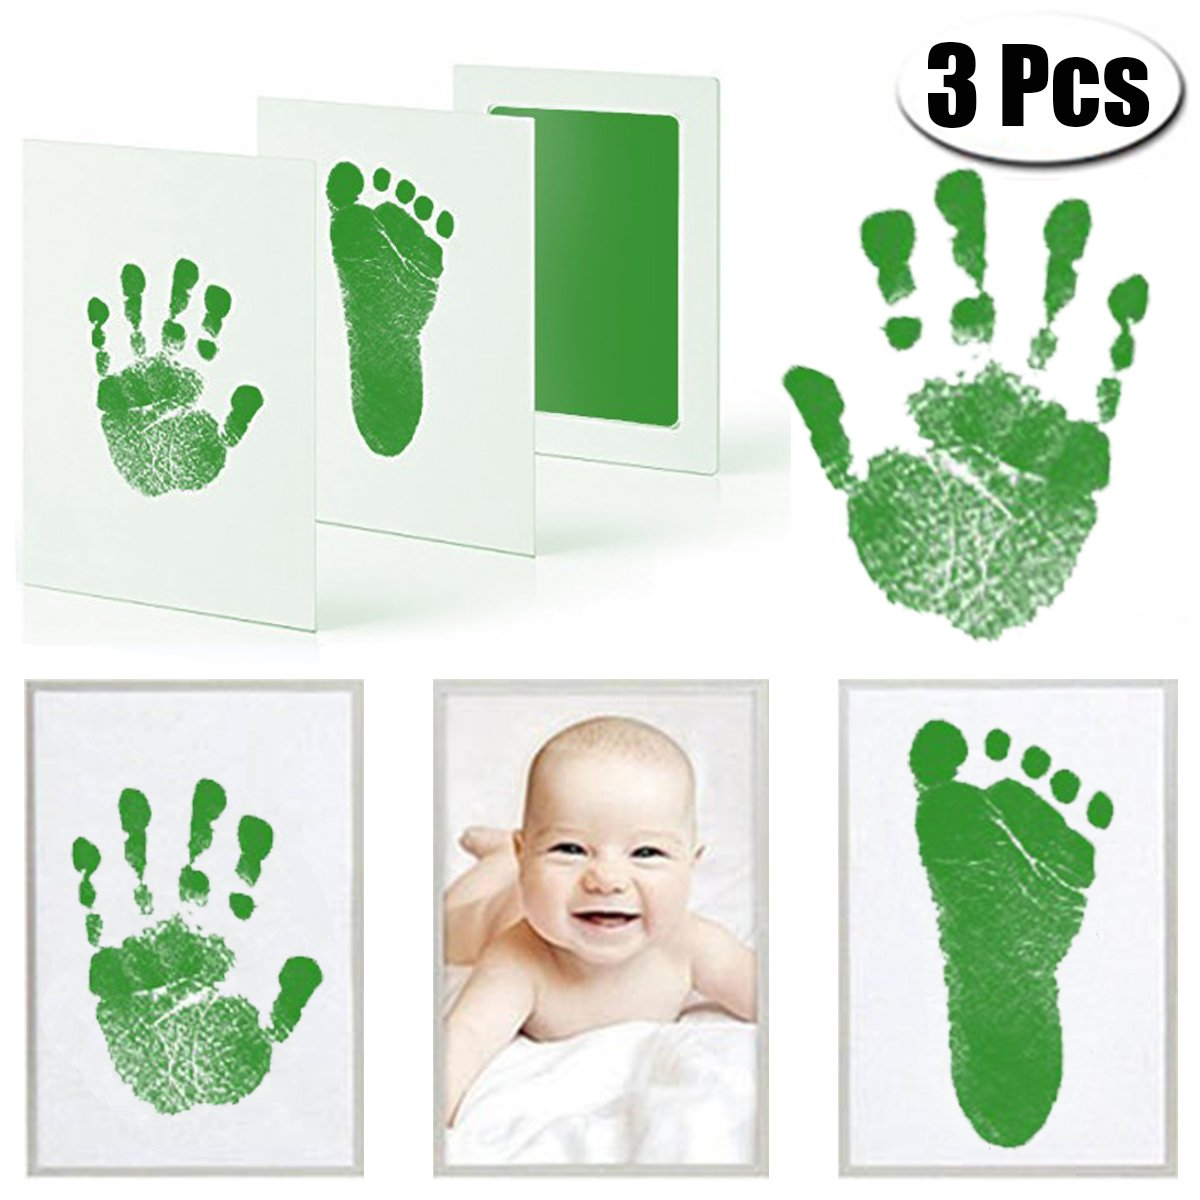 Mcree 3 Pcs Baby Ink Pad for Baby Footprints Hand prints and Fingerprints Kit with 3 Extra Large Ink Pads and 6 Imprint Cards Perfect Keep Baby Memory Baby Shower Gift (Green)